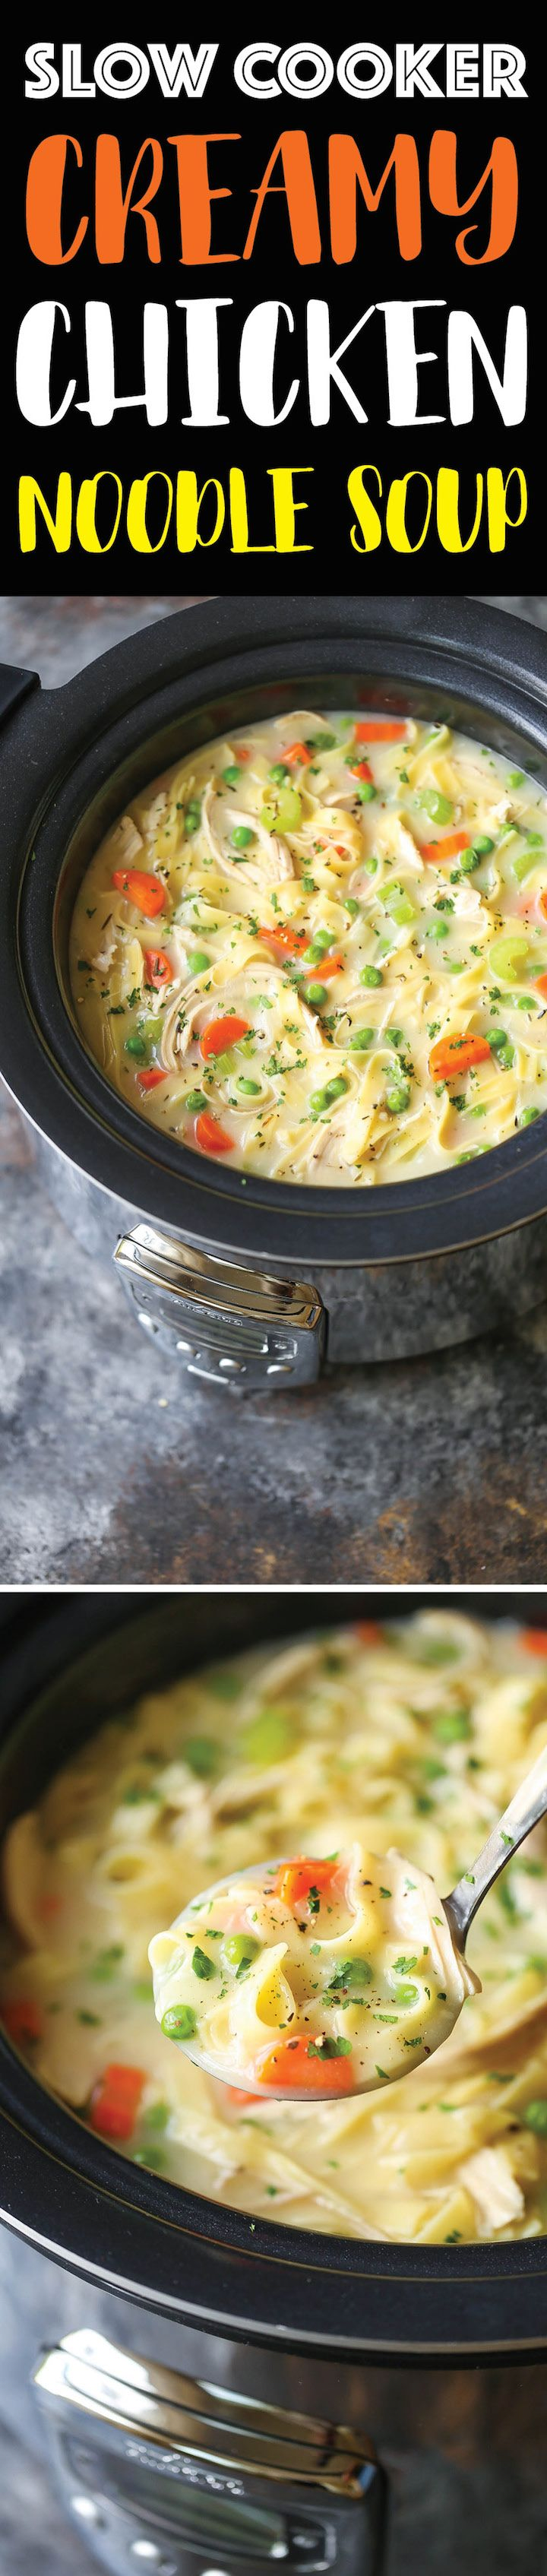 slow cooker creamy chicken noodle soup  recipe  slow